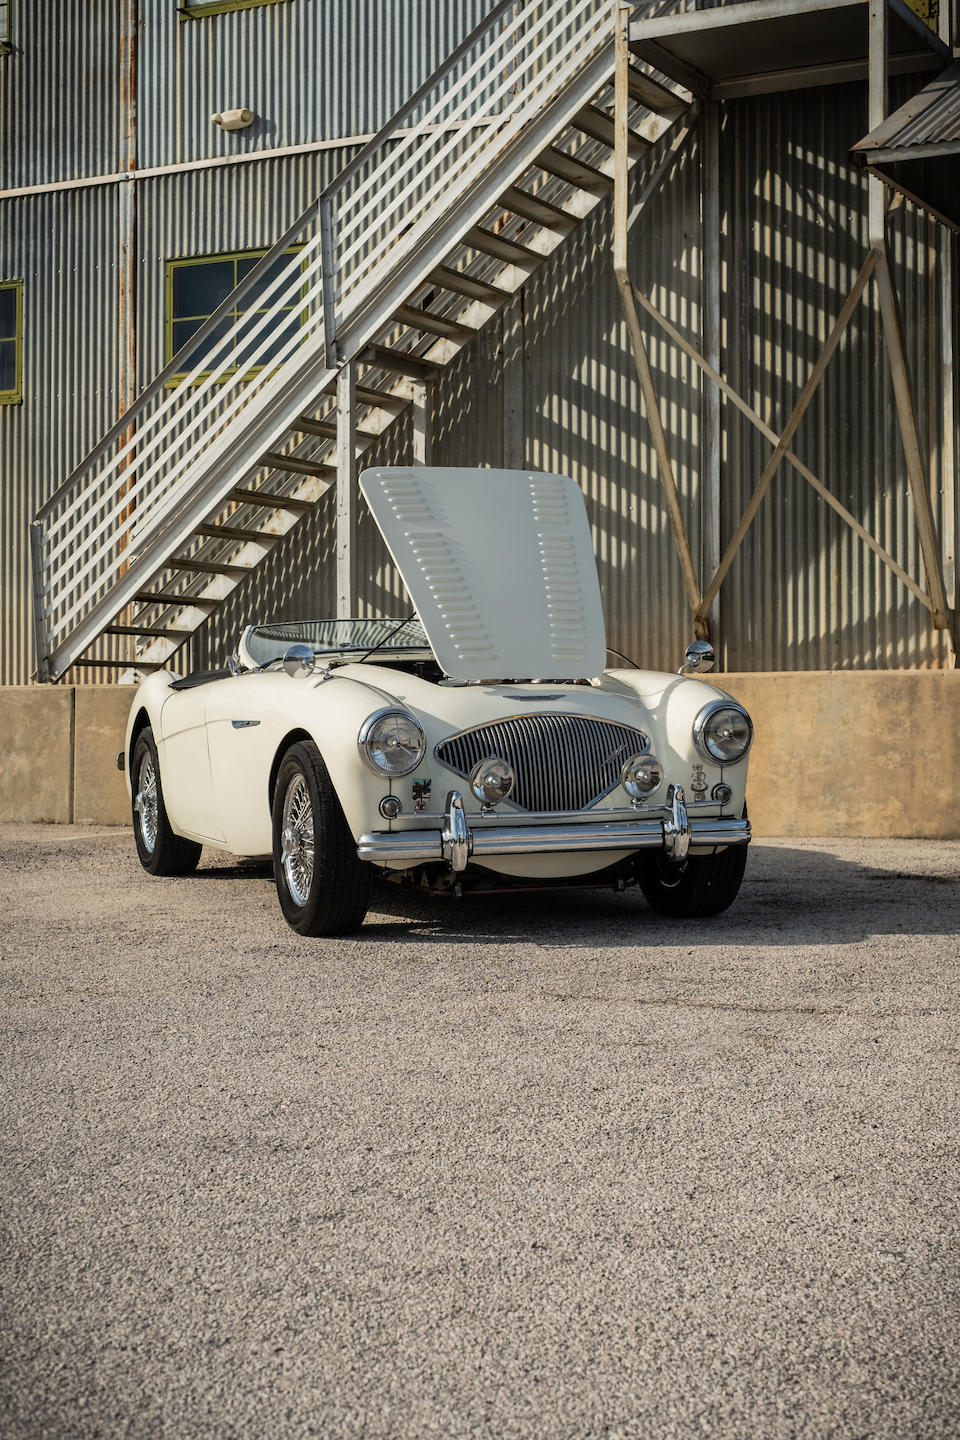 <b>1954 Austin-Healey 100-4 BN1 Roadster</b><br />Chassis no. 161015<br />Engine no. 1B215081